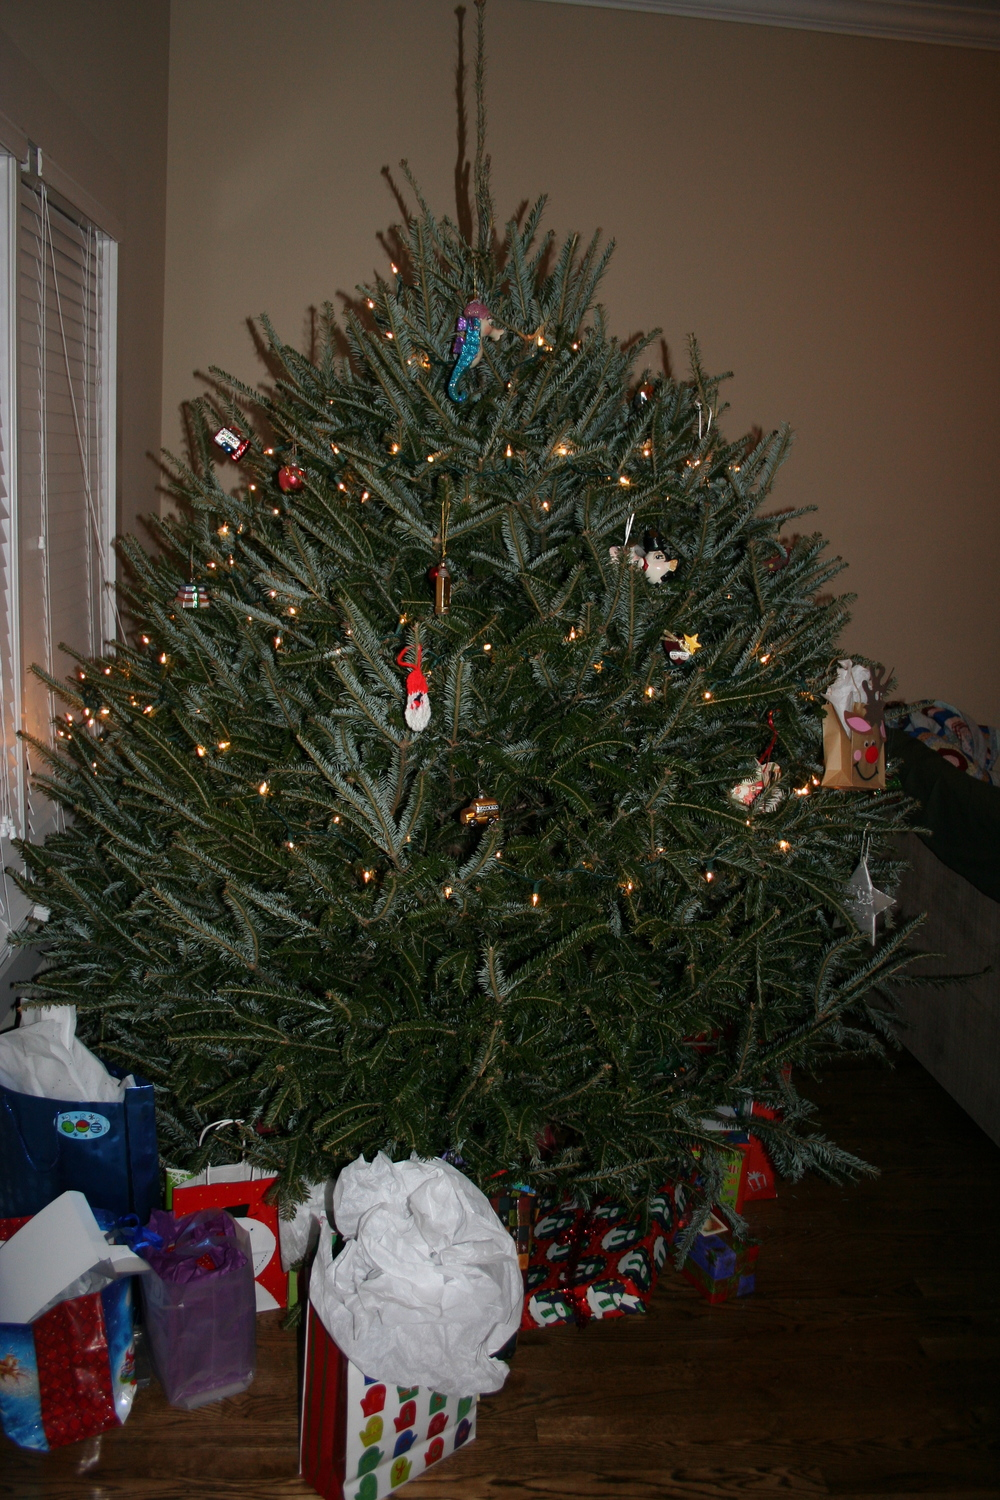 2005 - While Josh was in Iraq I picked up a fresh cut tree at a local tree farm in TN. I threw the only lights and ornaments I had on it and called it good. Looking back now it was a bit sad looking.